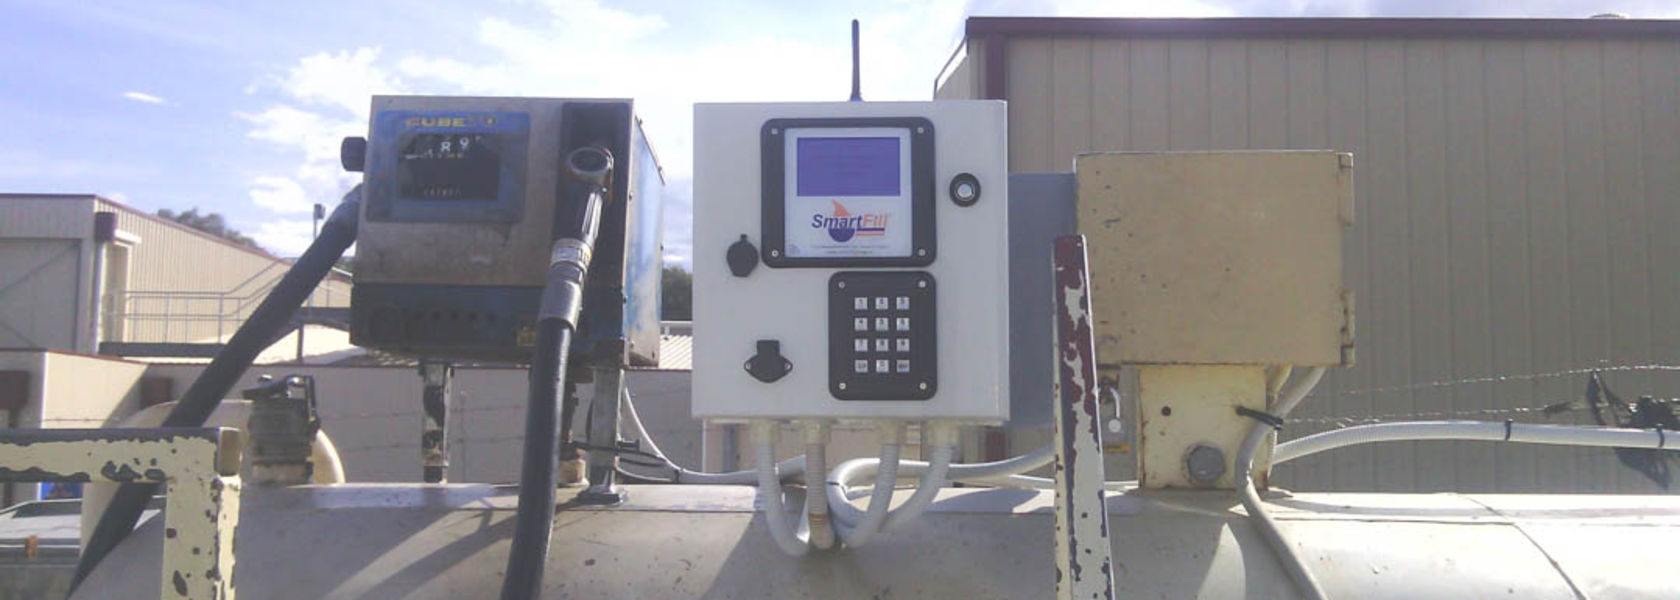 FMT device stops fuel theft